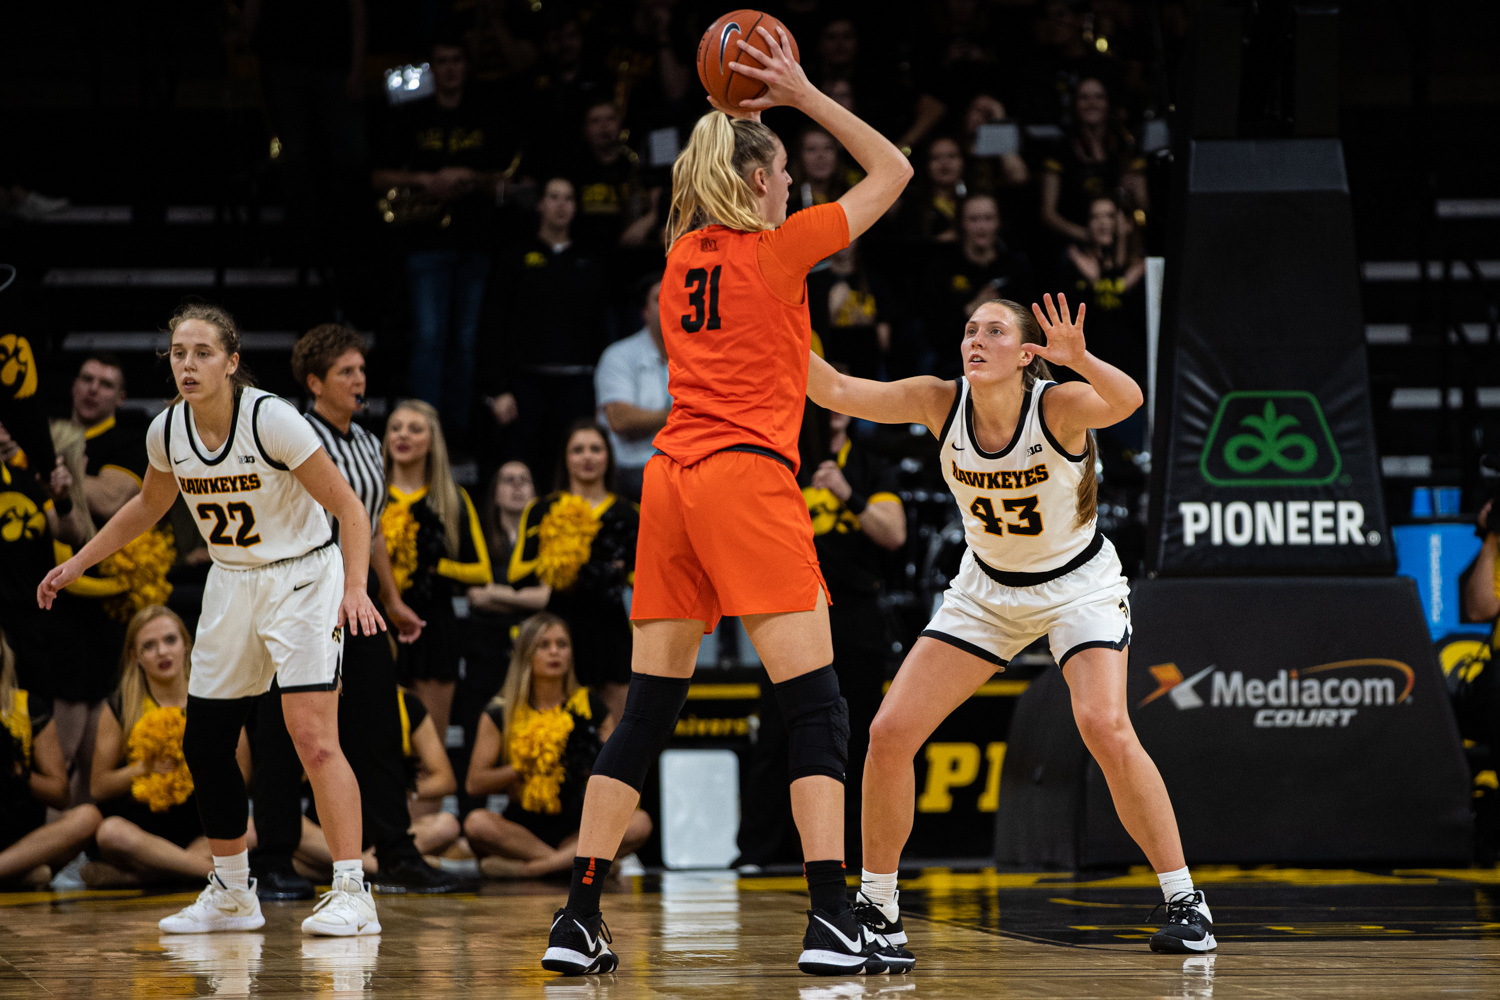 Iowa forward Amanda Ollinger defends during a women's basketball game between Iowa and Princeton at Carver-Hawkeye Arena on Wednesday, November 20, 2019. The Hawkeyes defeated the Tigers, 77-75, in overtime.